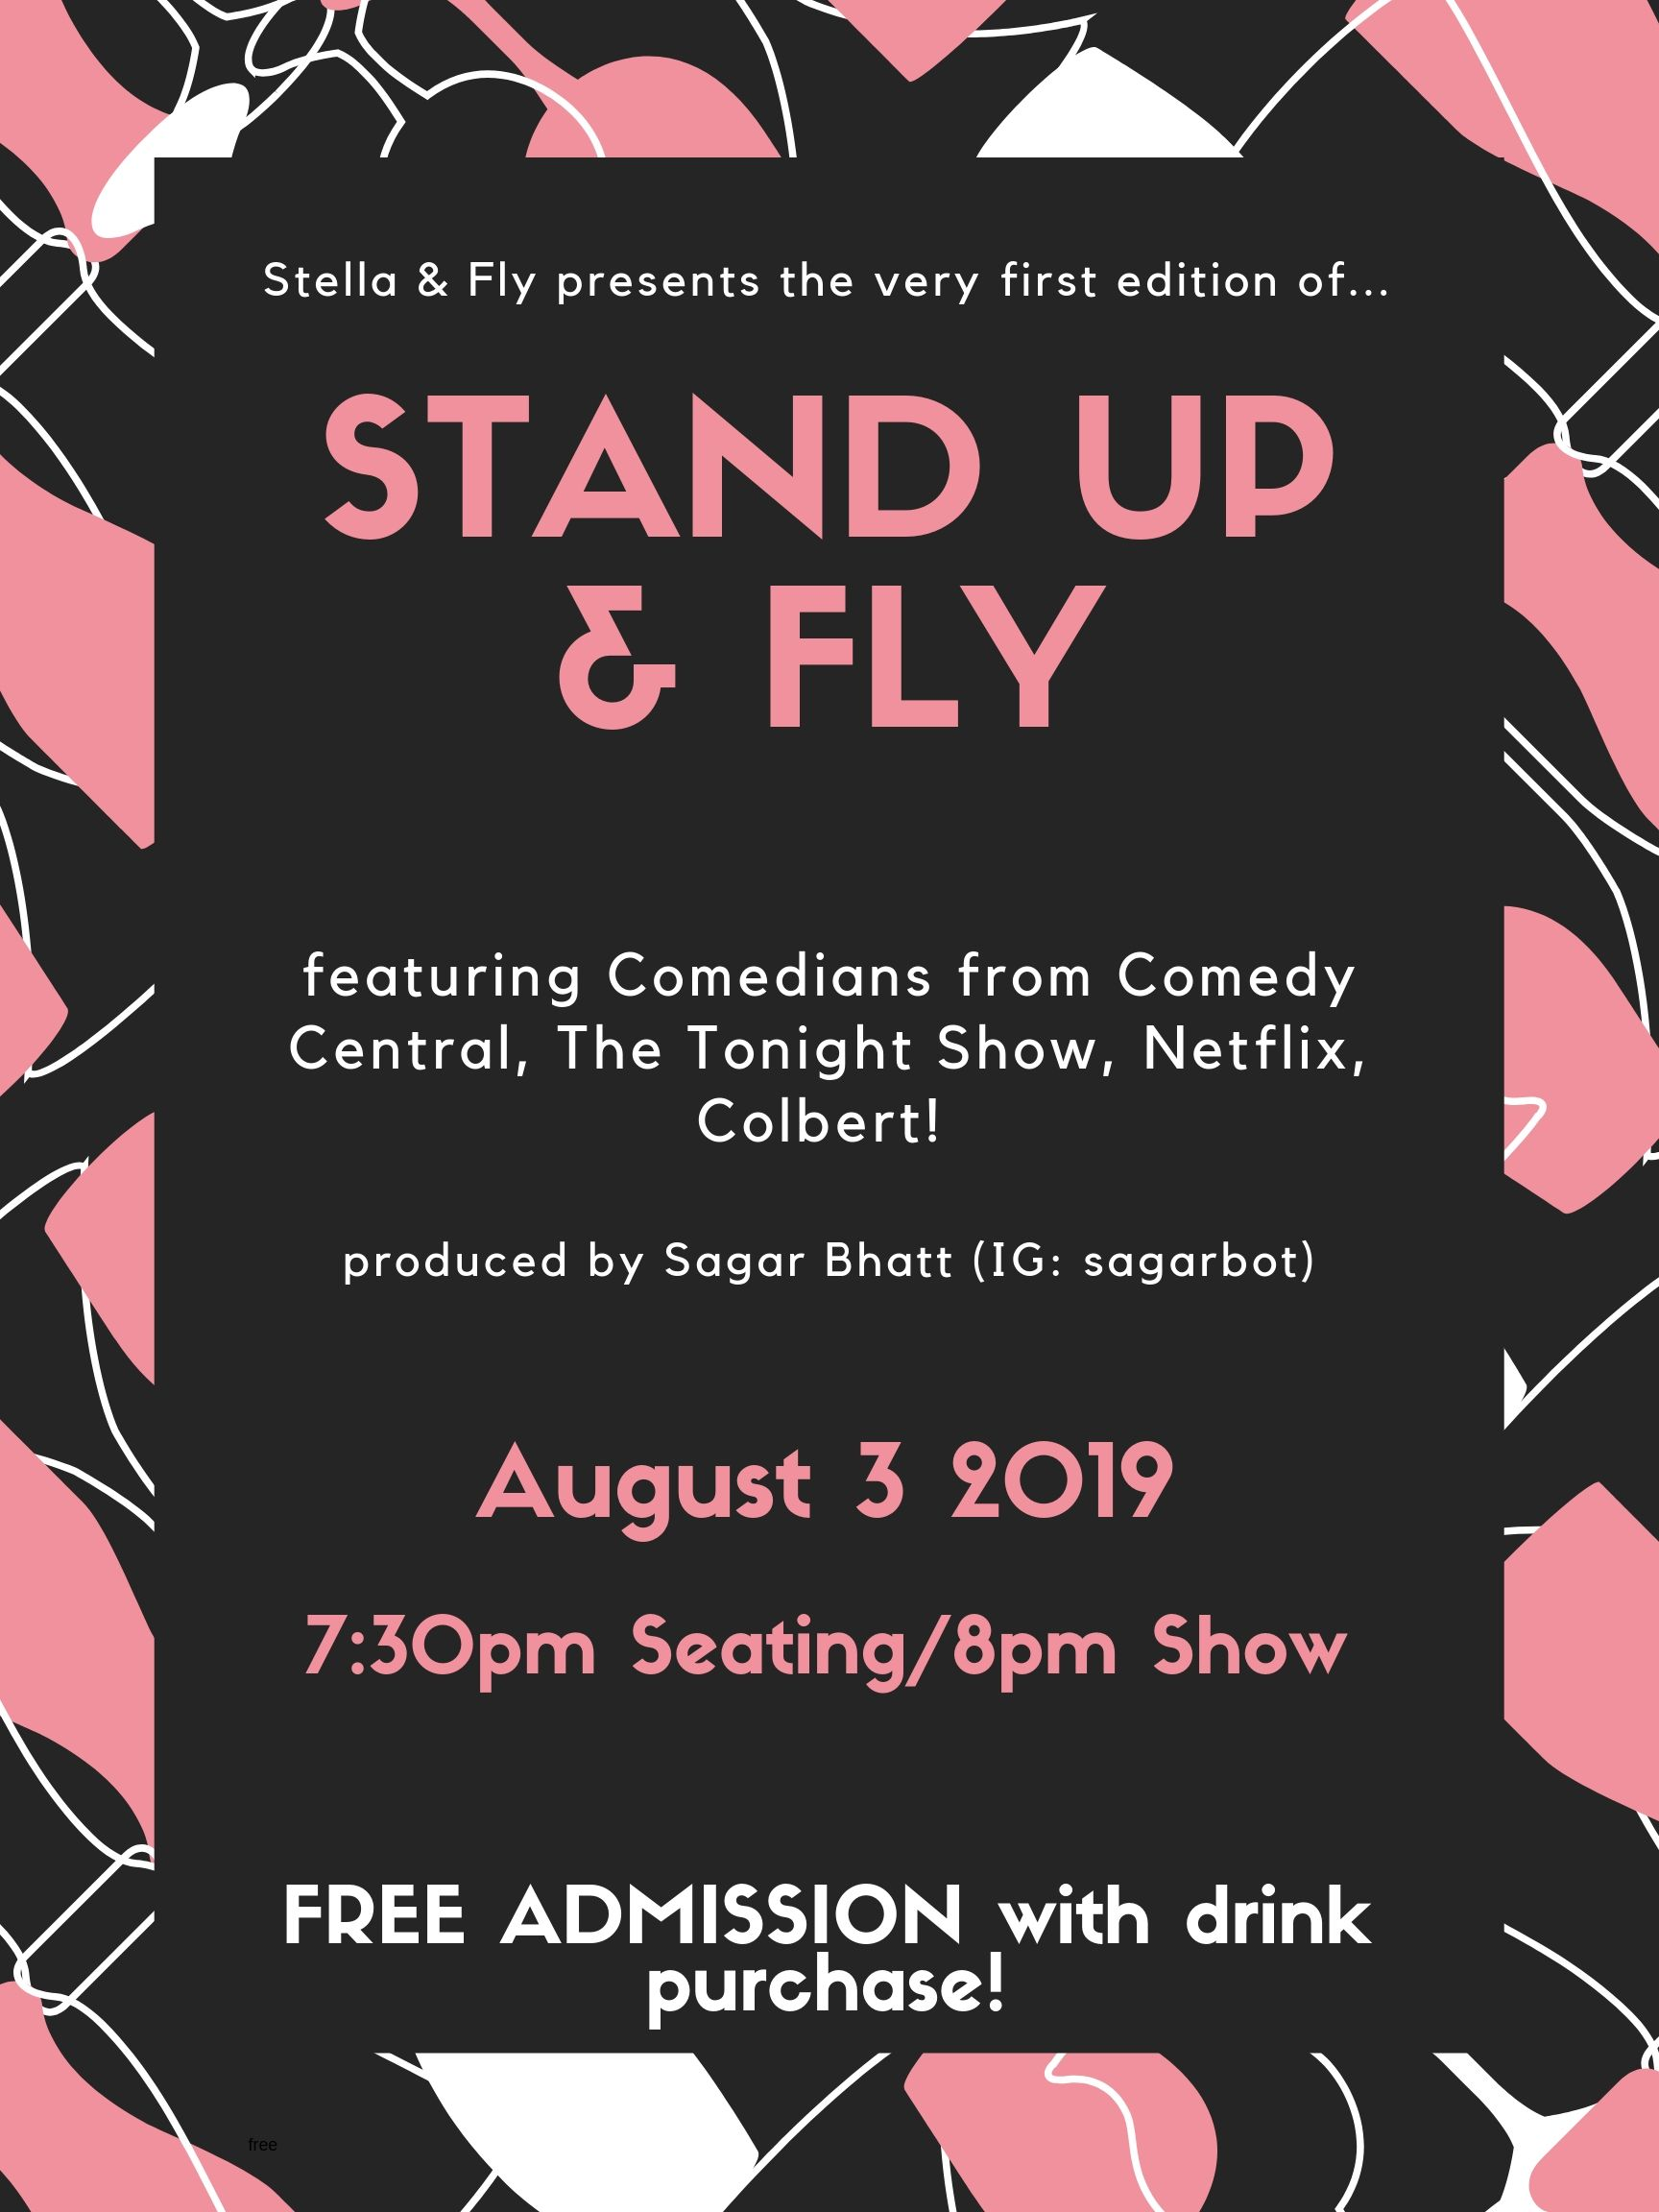 stand up & fly poster